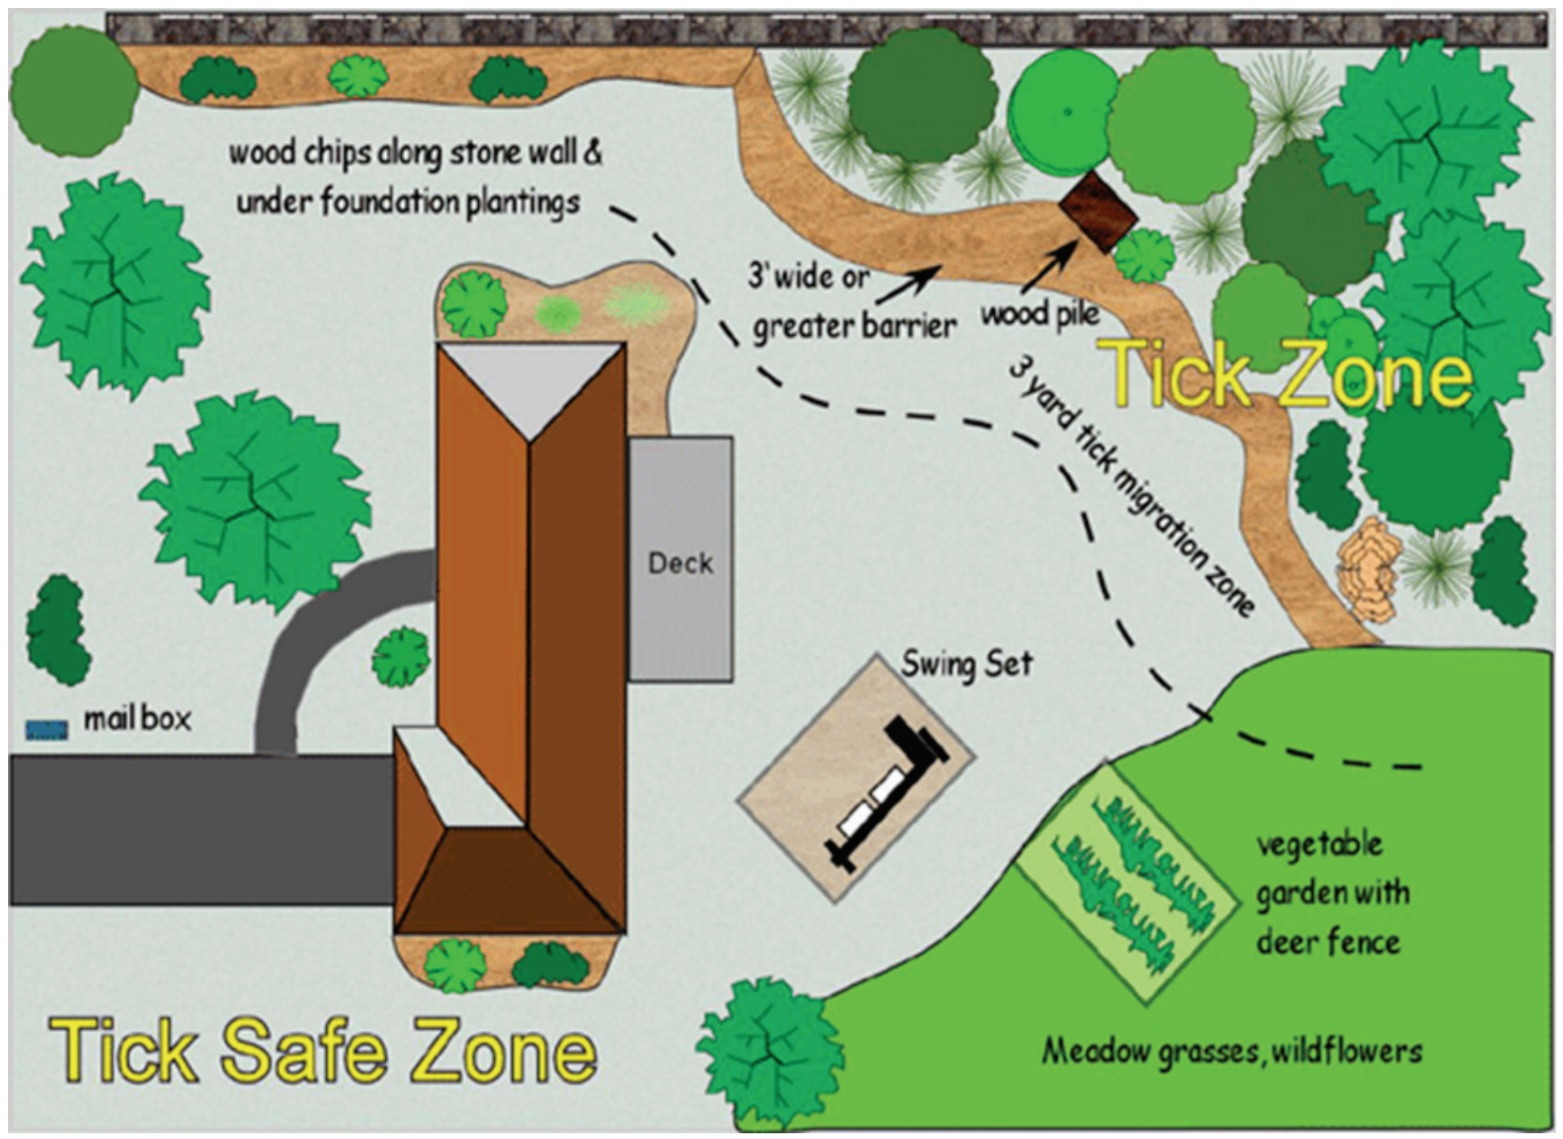 Landscaping for homeowners to provide a tick migration zone for targeted pesticide applications.